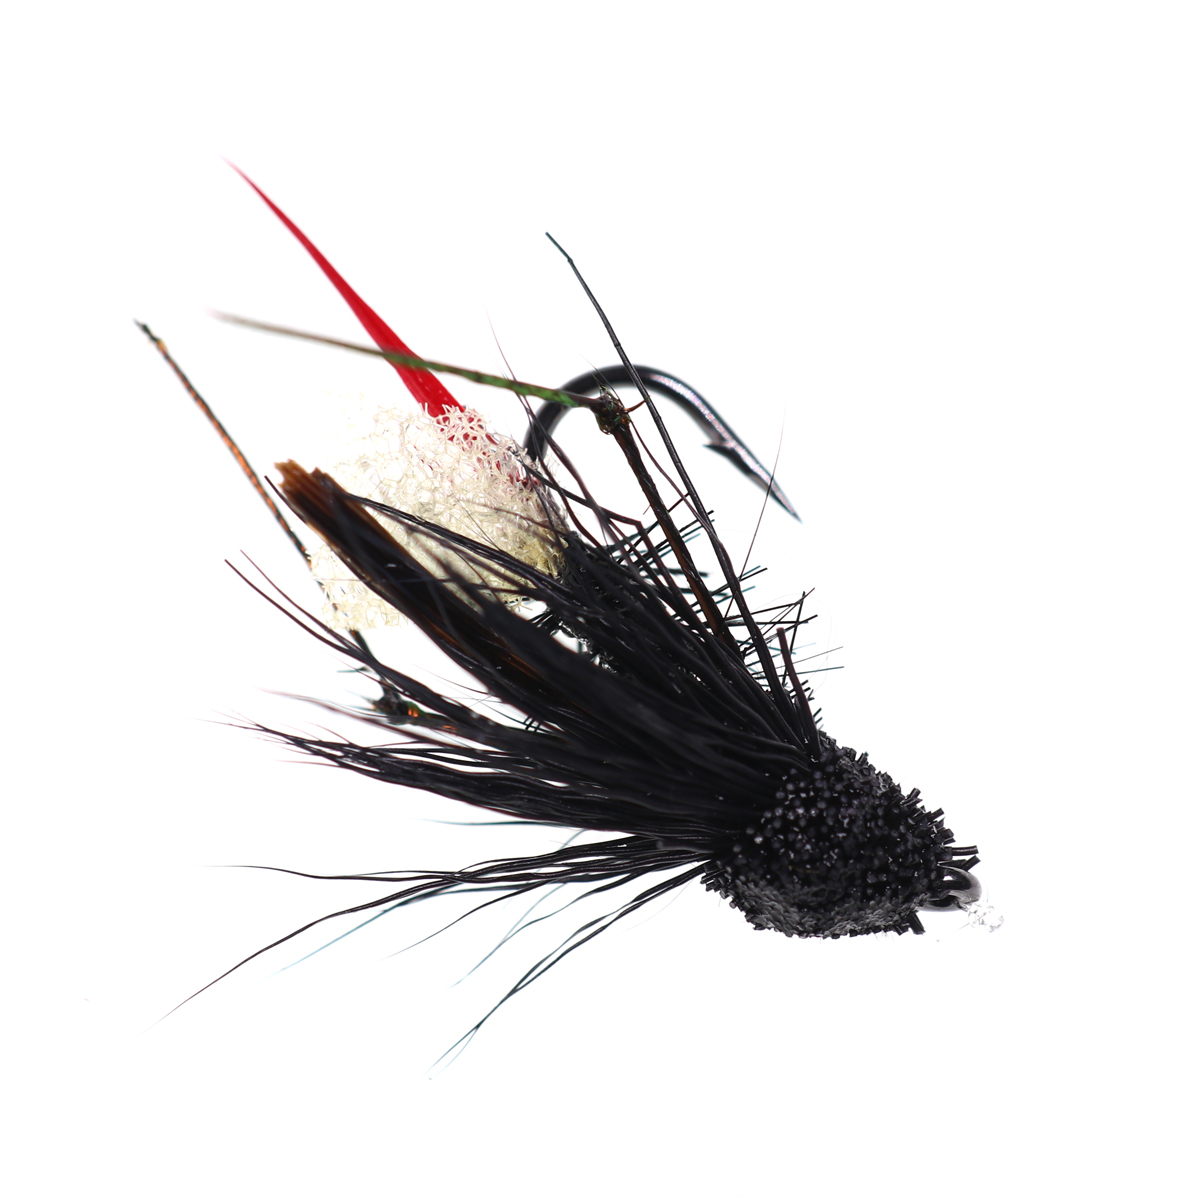 5PCS #10 Trout Fishing Fly Grass Hopper Fly terrestrial Hopper Fly Floating Bass Crappie Bug Bait Artificial Lure 23